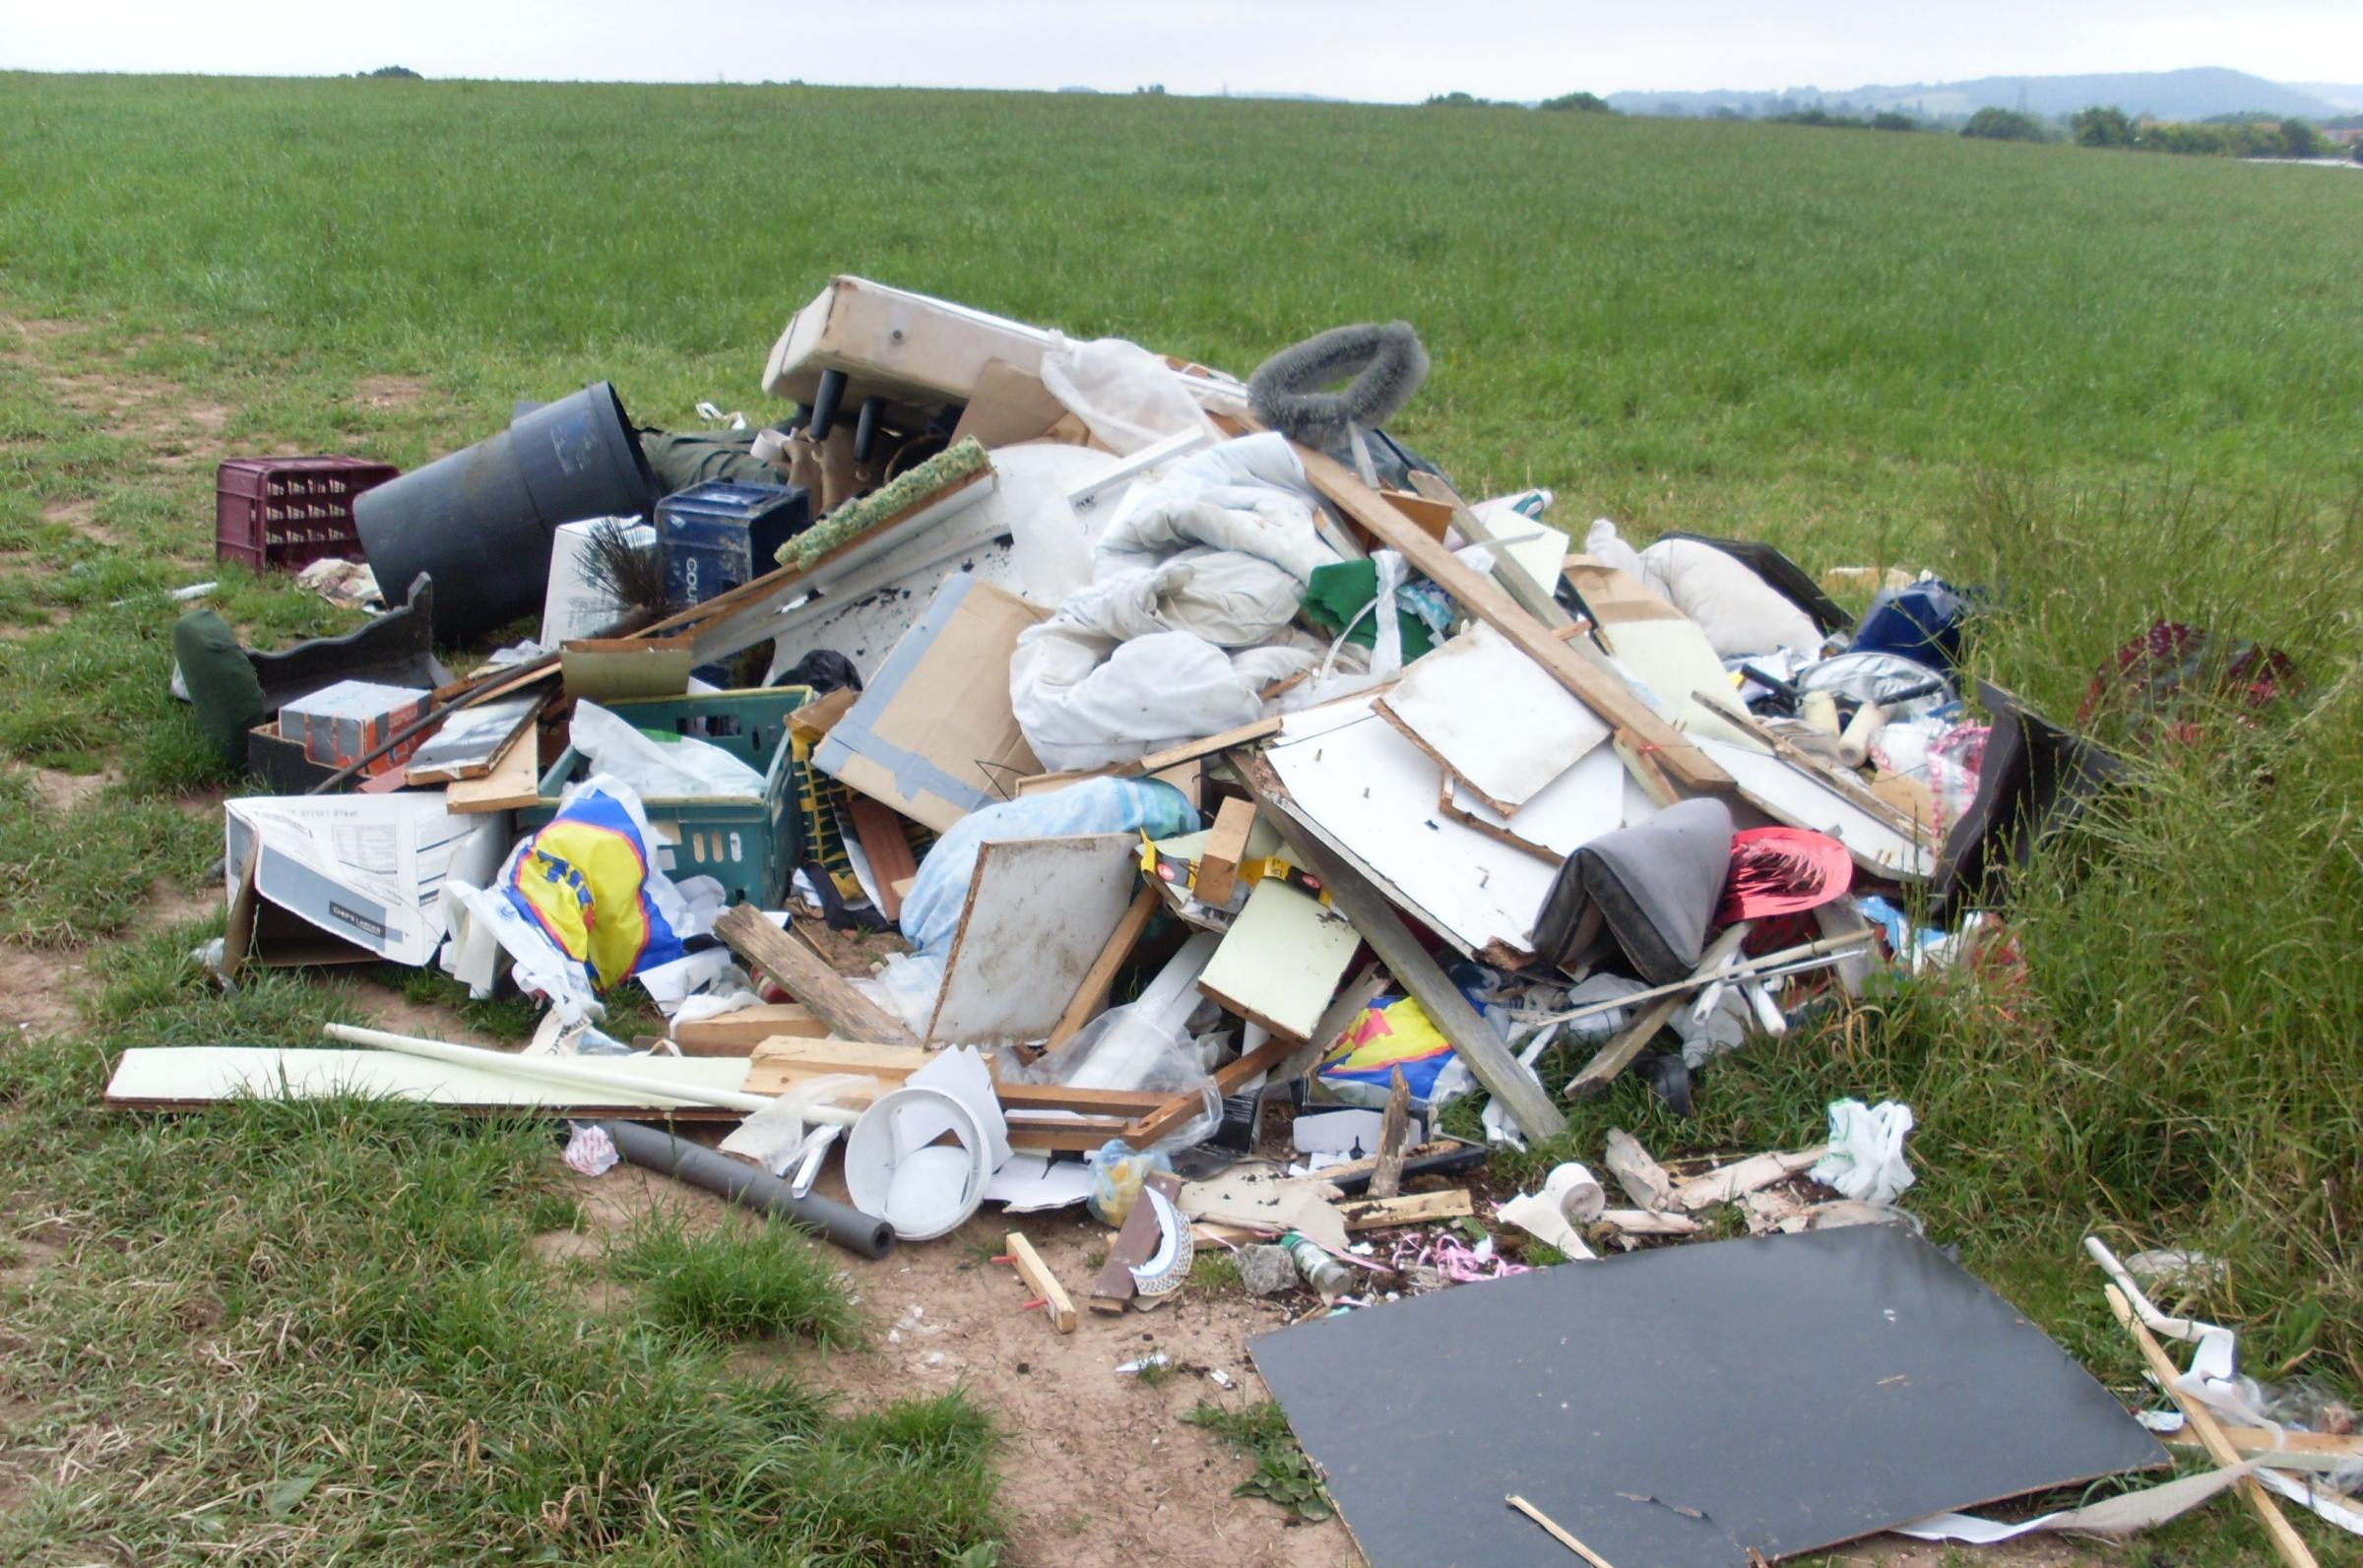 Courts adopt new guidelines for fly-tipping